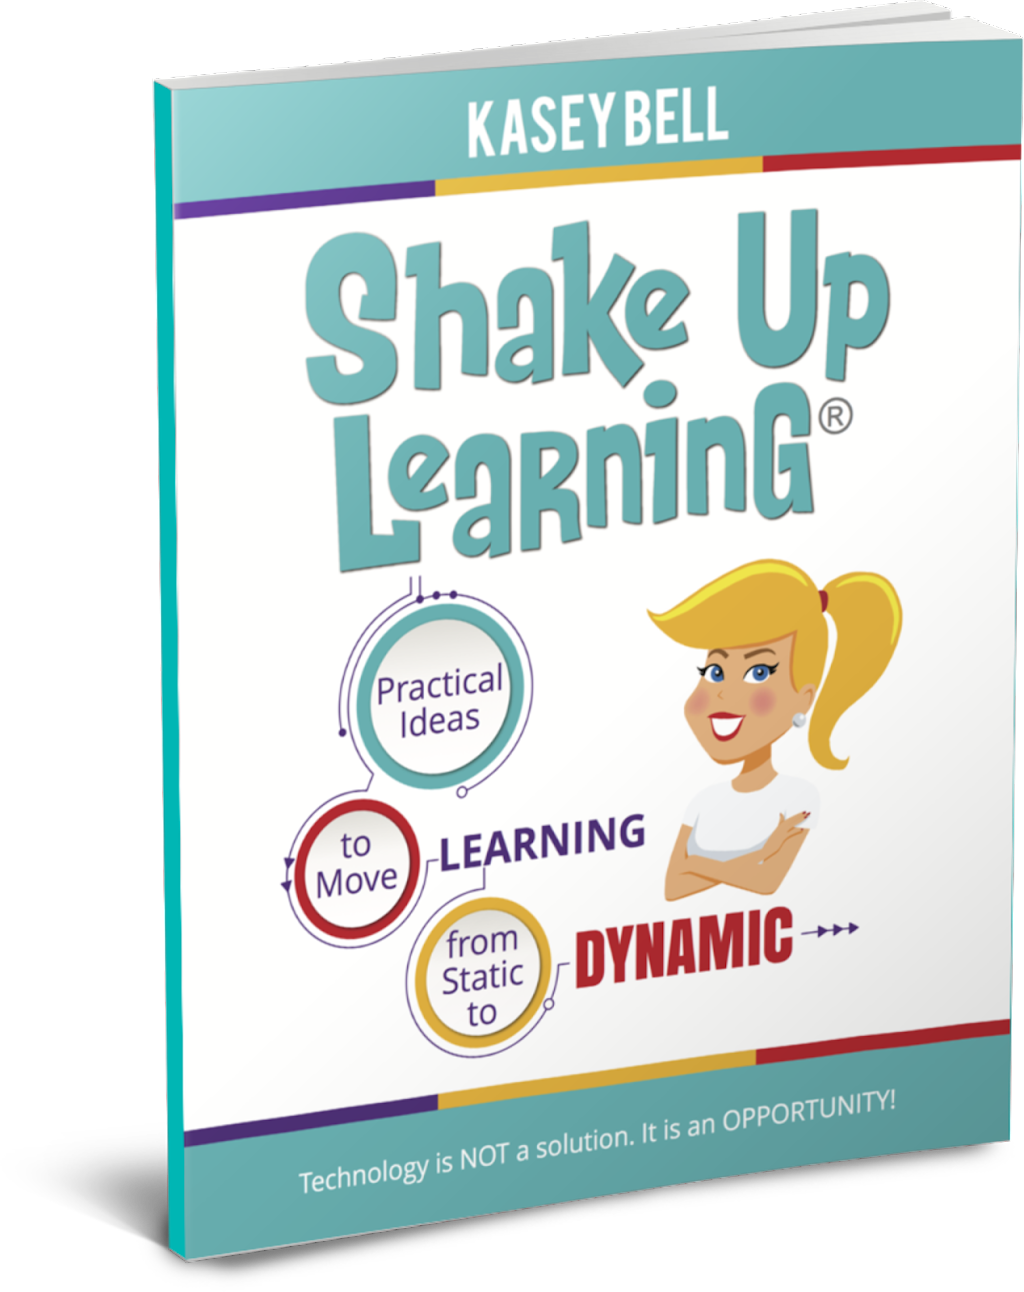 The Shake Up Learning Book